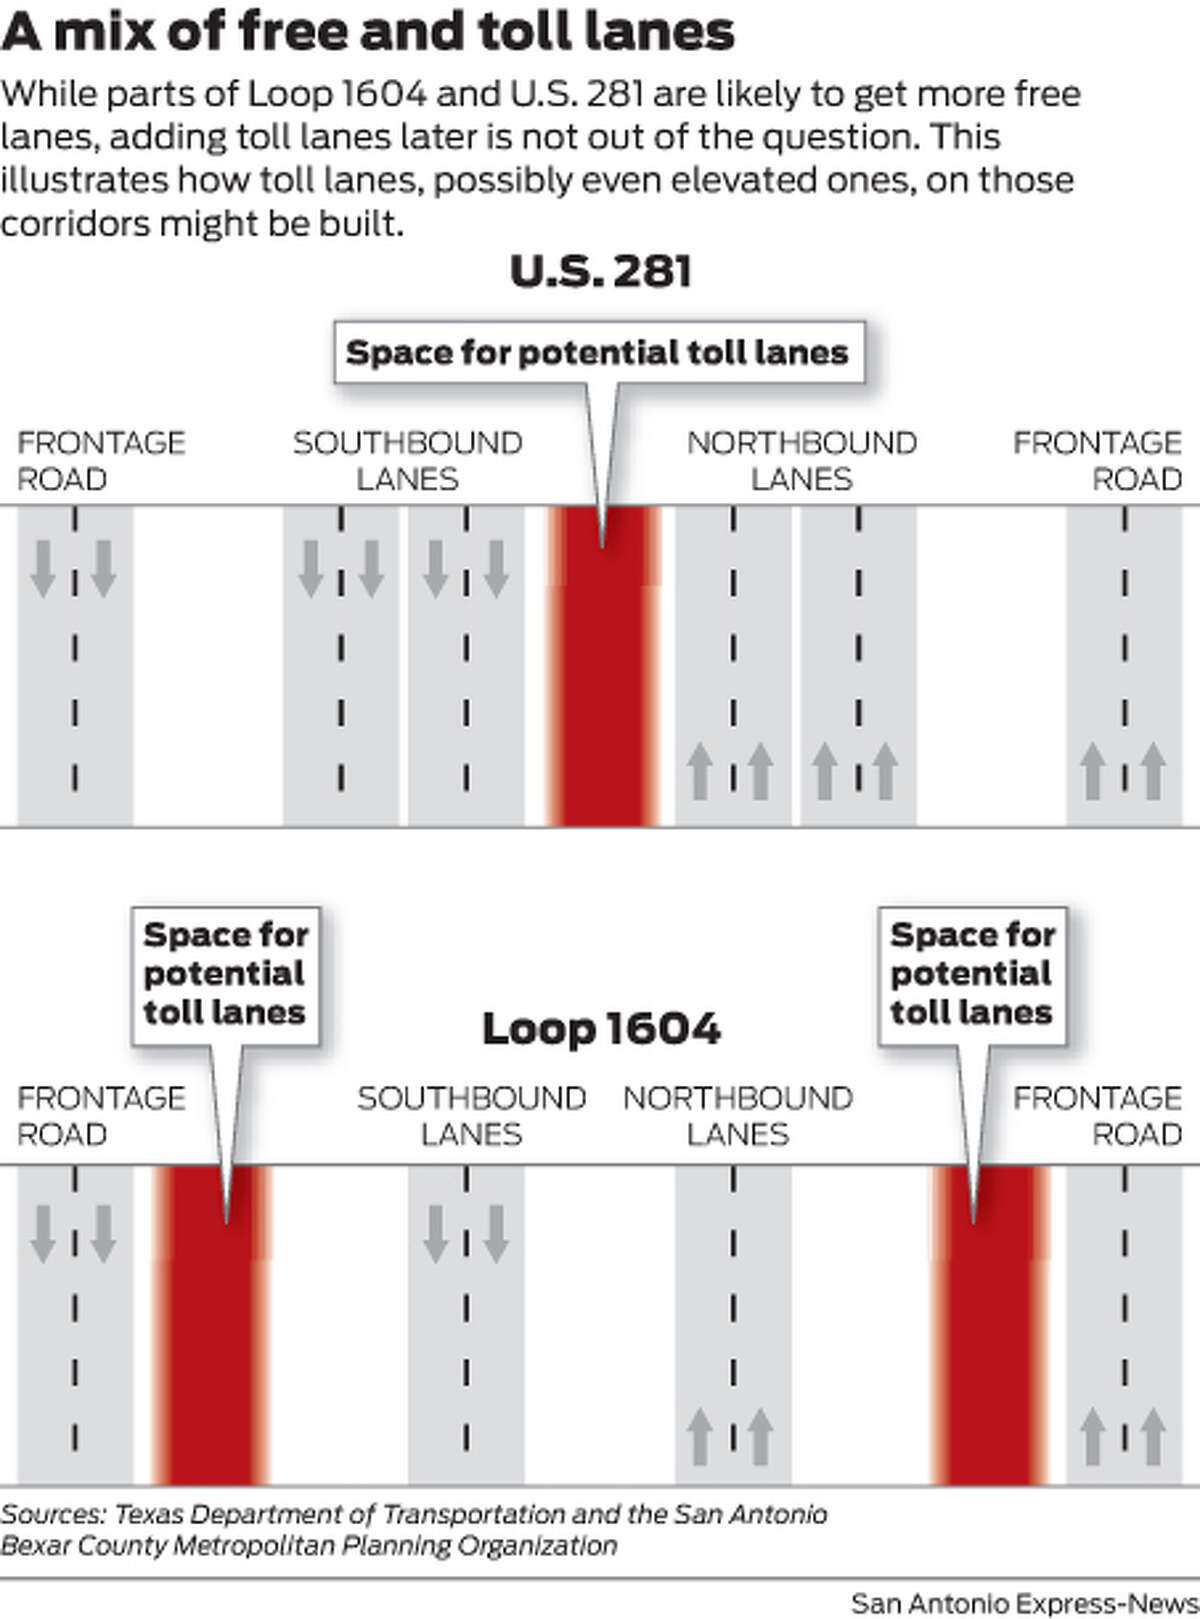 A mix of free and toll lanes While parts of Loop 1604 and U.S. 281 are likely to get more free lanes, adding toll lanes later is not out of the question. This illustrates how toll lanes, possibly even elevated ones, on those corridors might be built.